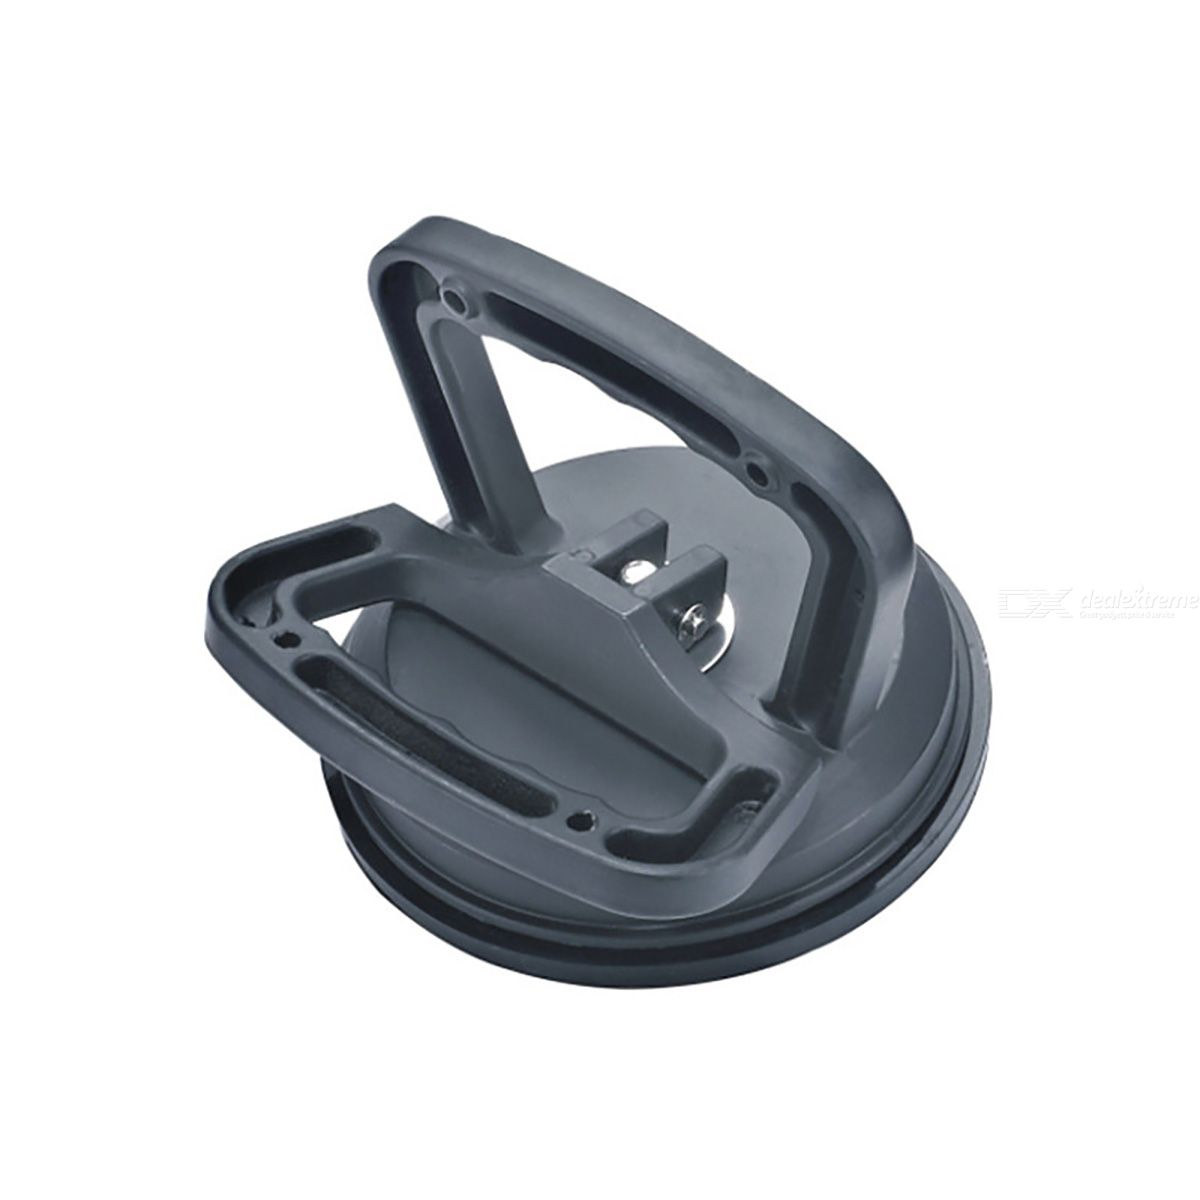 Tile Suction Cup Vacuum Glass Suction Cup Aluminum Alloy Vacuum Suction Cup Glass Lifter Suction Cups